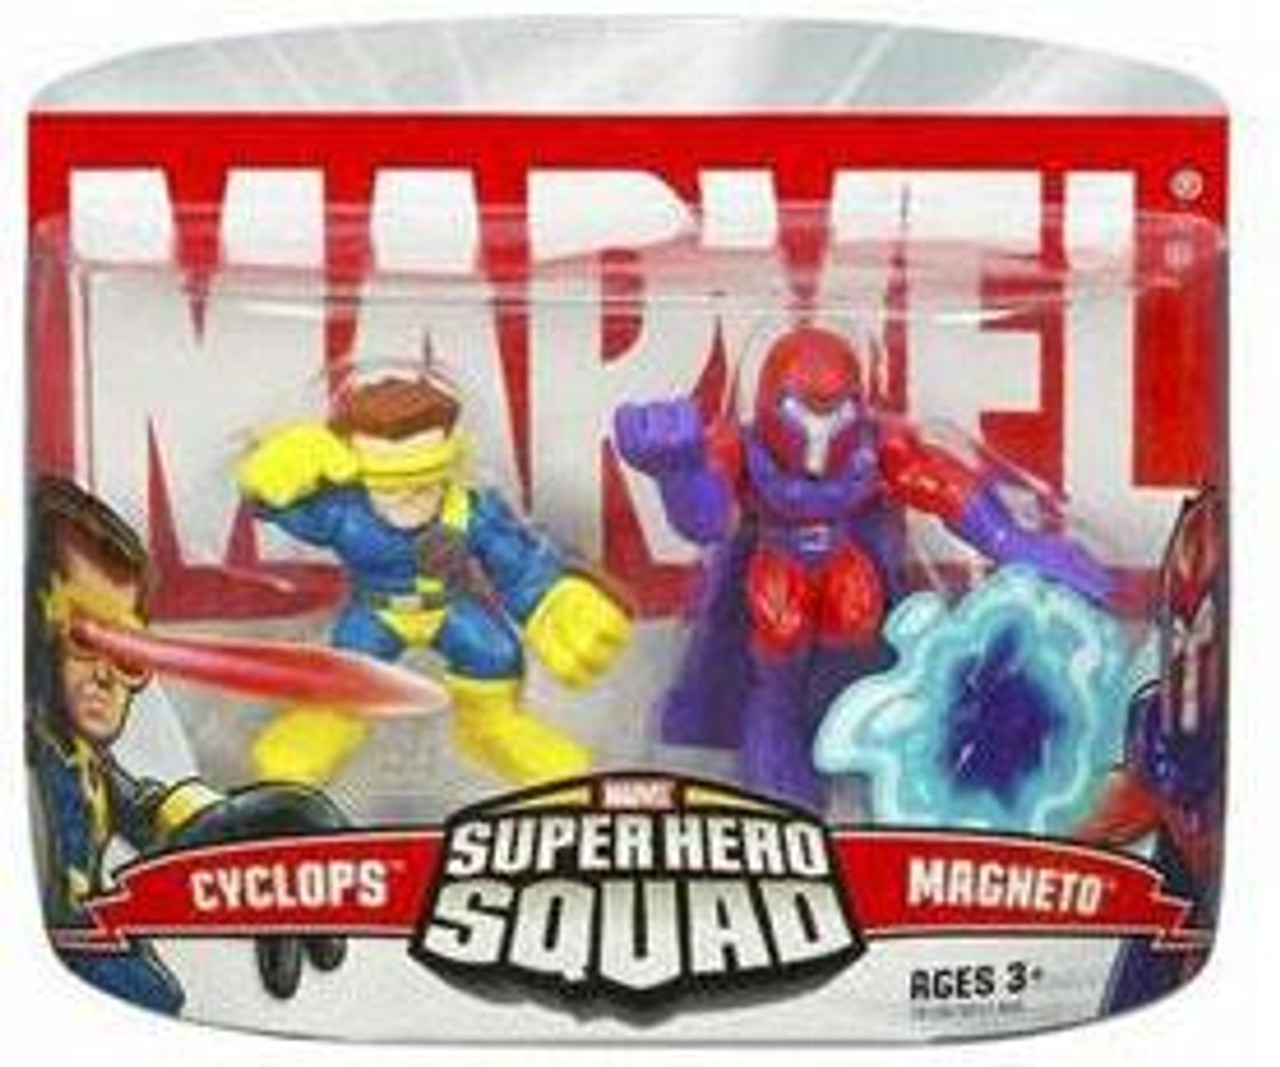 Marvel Super Hero Squad Series 1 Magneto & Cyclops Action Figure 2-Pack